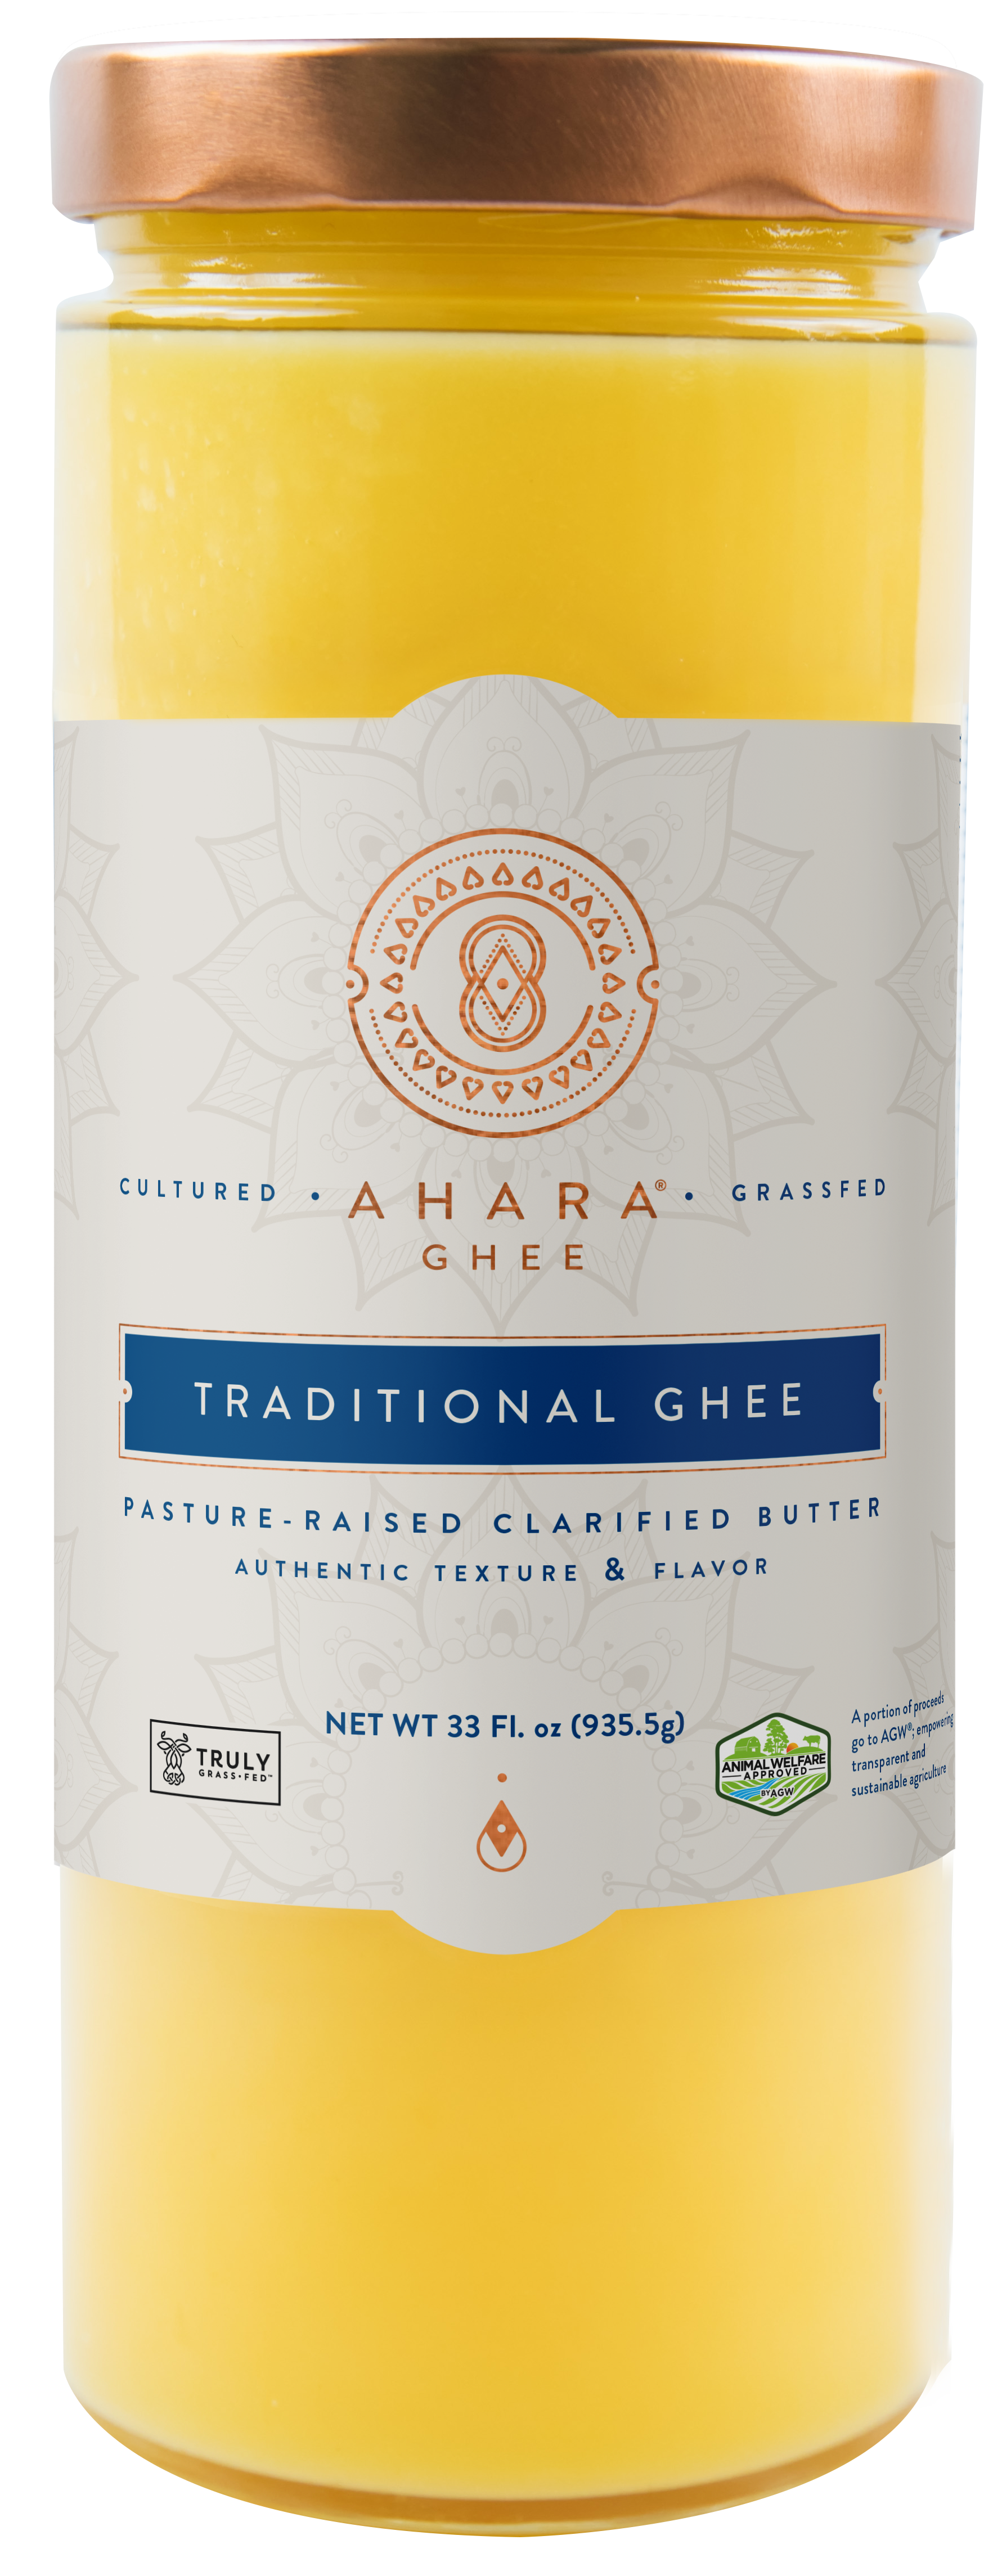 BIG Cultured Ghee DUO - MahaGhee™ and Ahara Ghee® together at last!